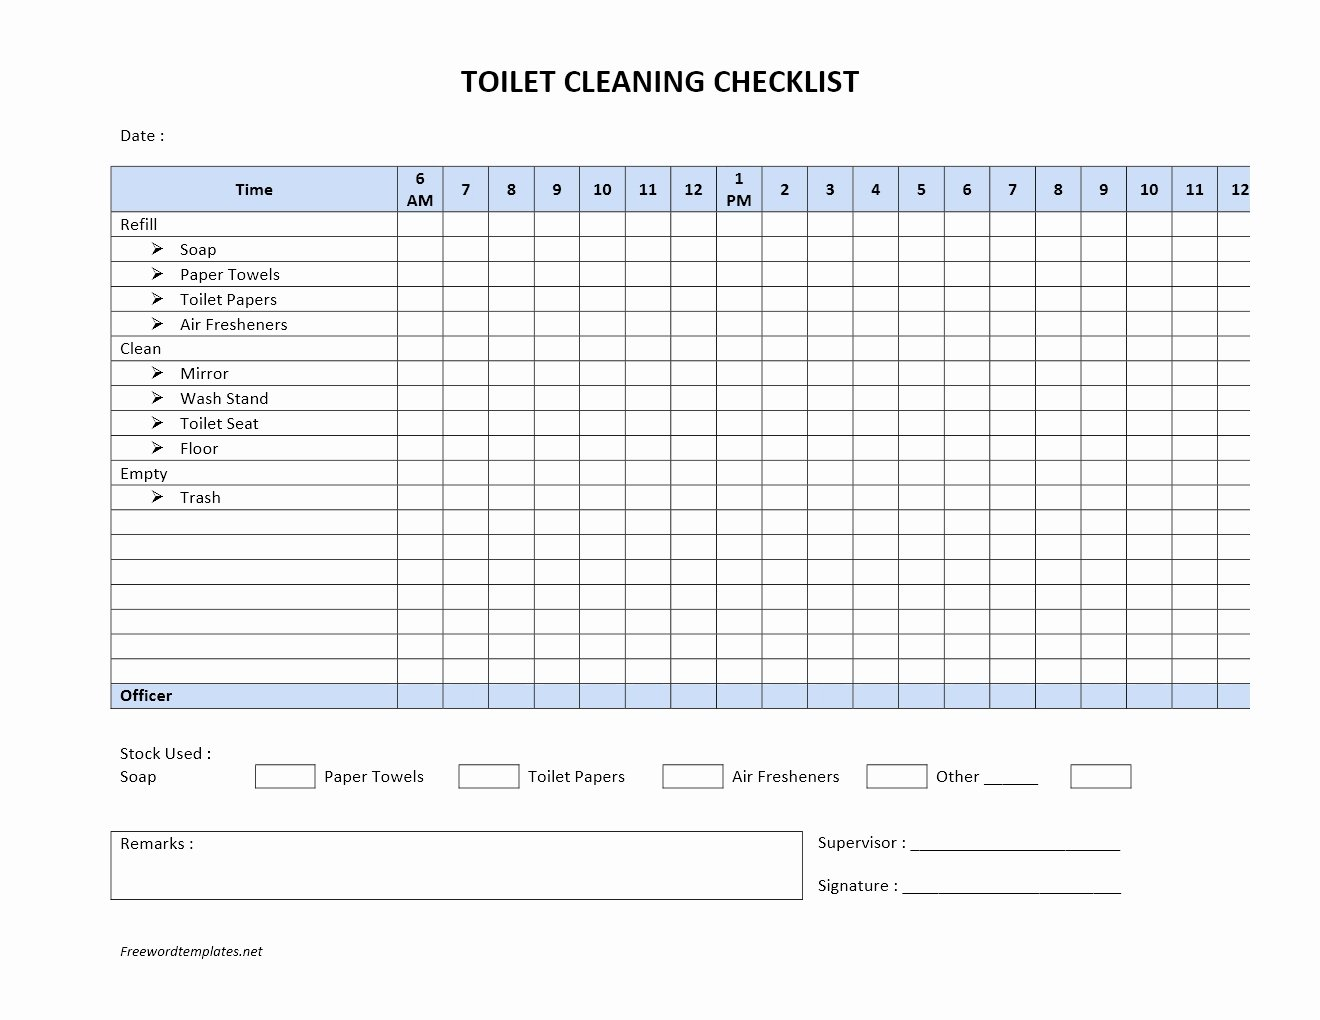 Bathroom Cleaning Checklist Template Unique toilet Cleaning Checklist